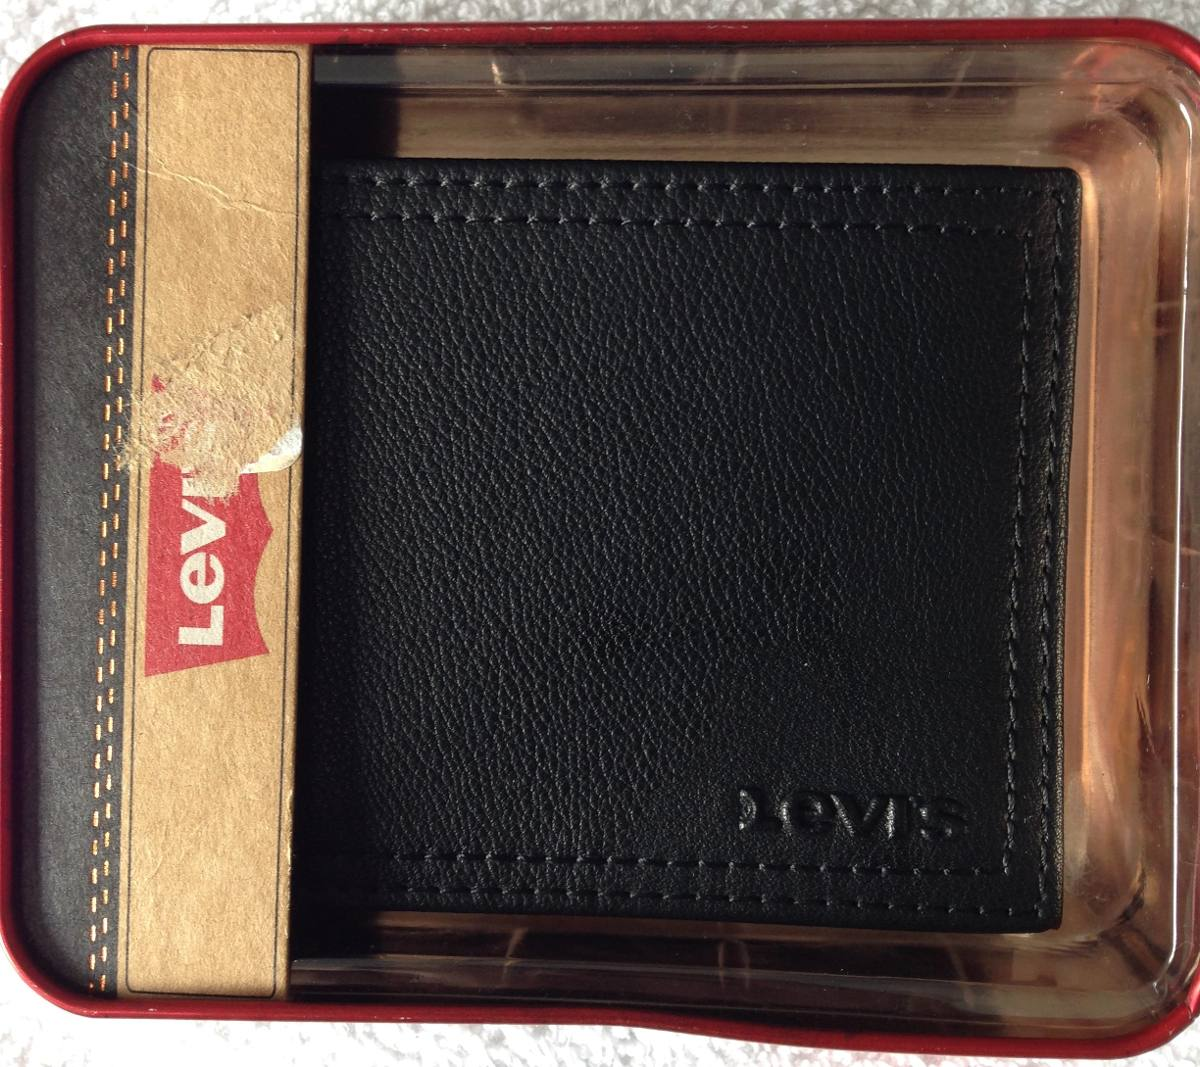 823f4315c Billetera Levis 100% Original - $ 70.000 en Mercado Libre